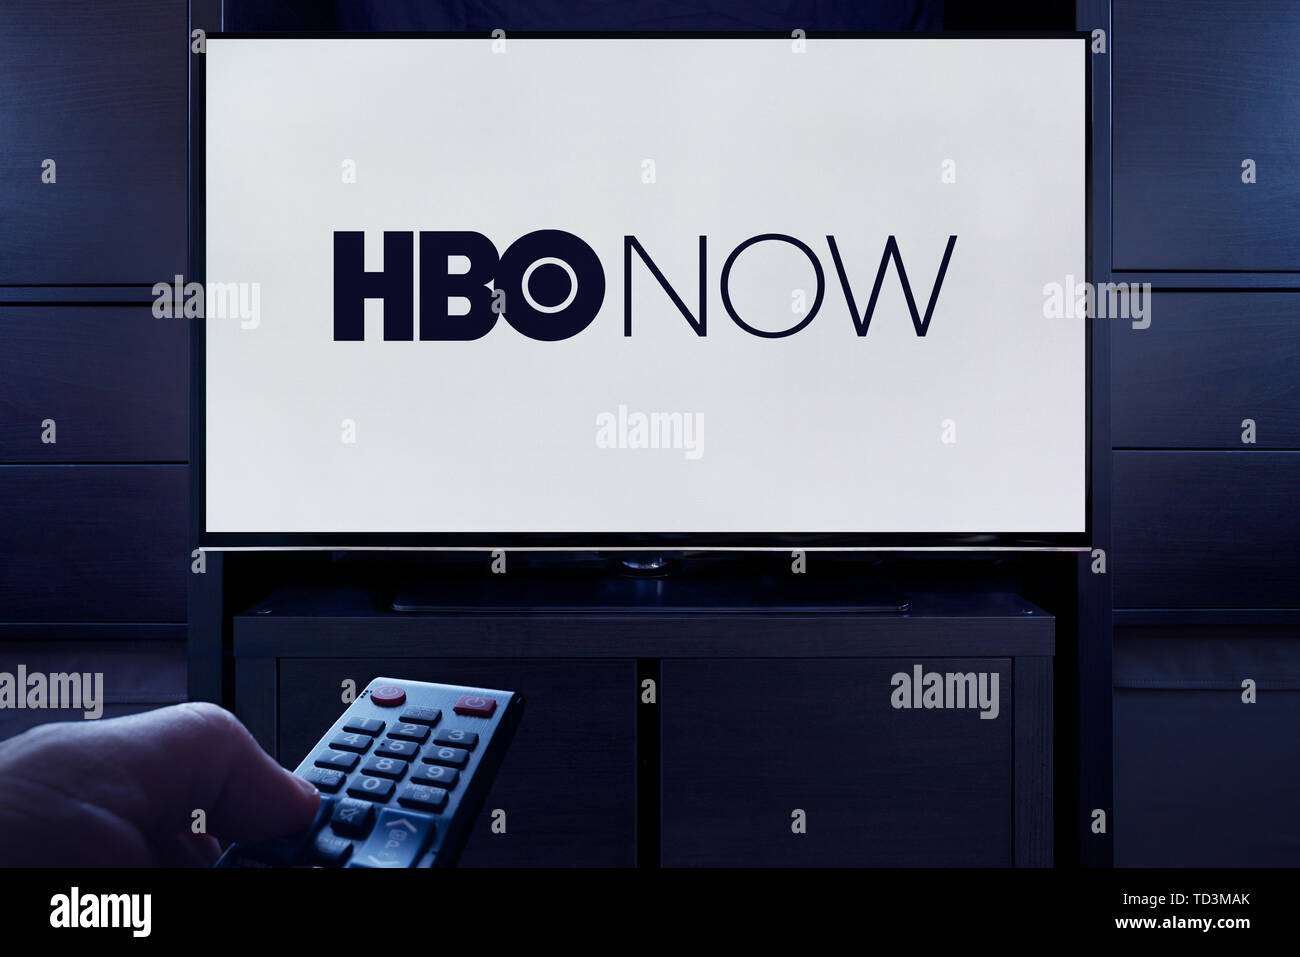 A man points a TV remote at the television which displays the logo for the HBO Now on demand video streaming service (Editorial use only). - Stock Image